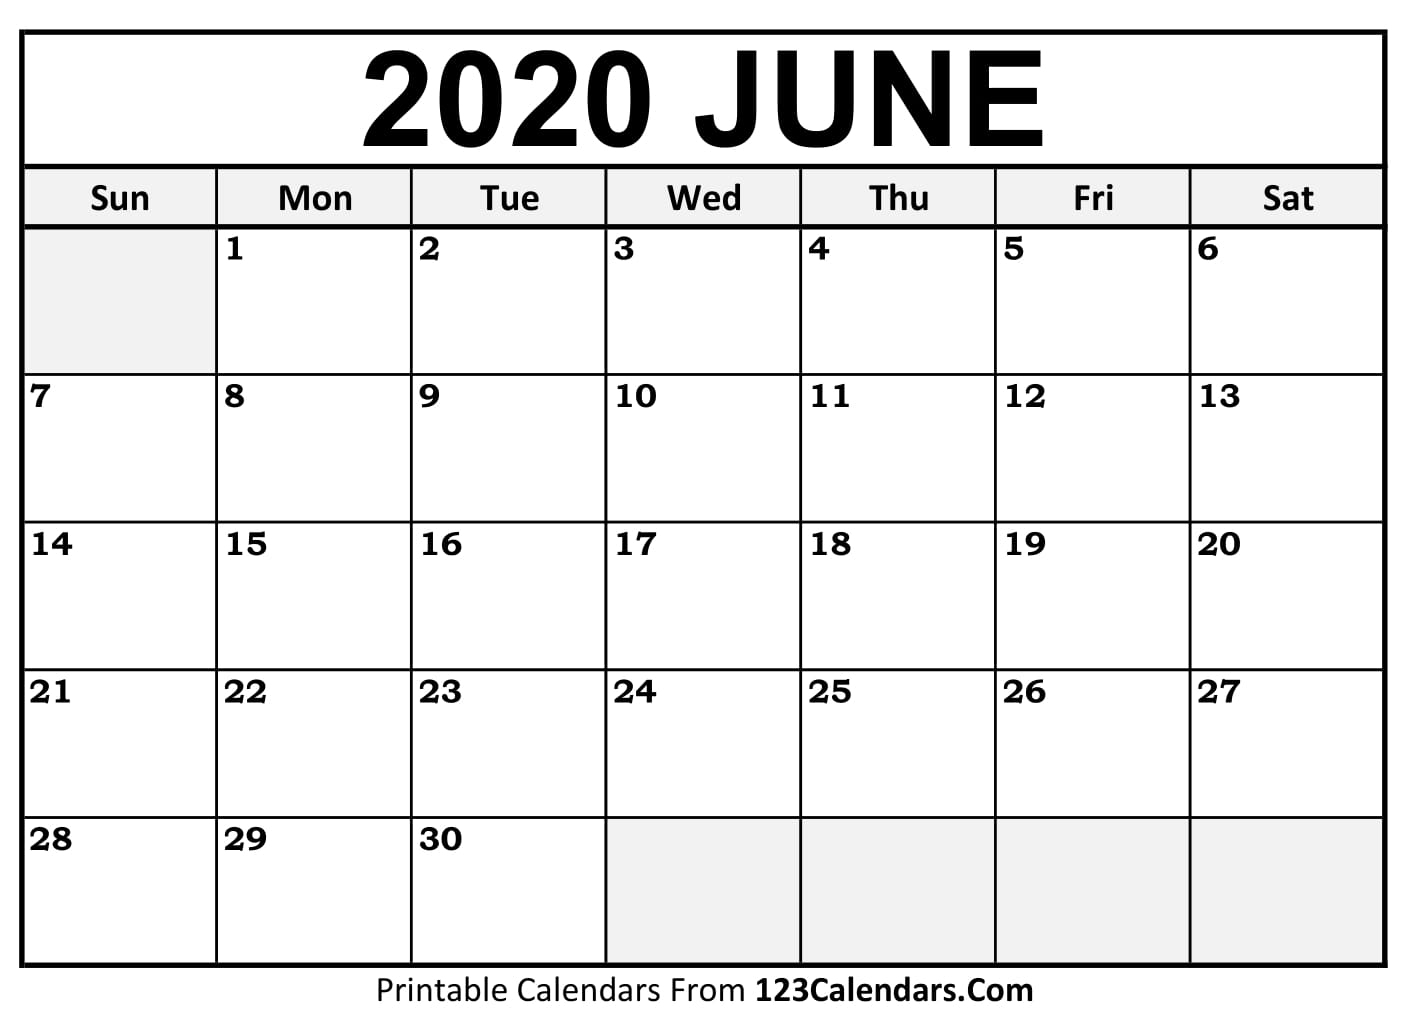 June 2020 Printable Calendar | 123Calendars throughout 123 Calendar January 2020